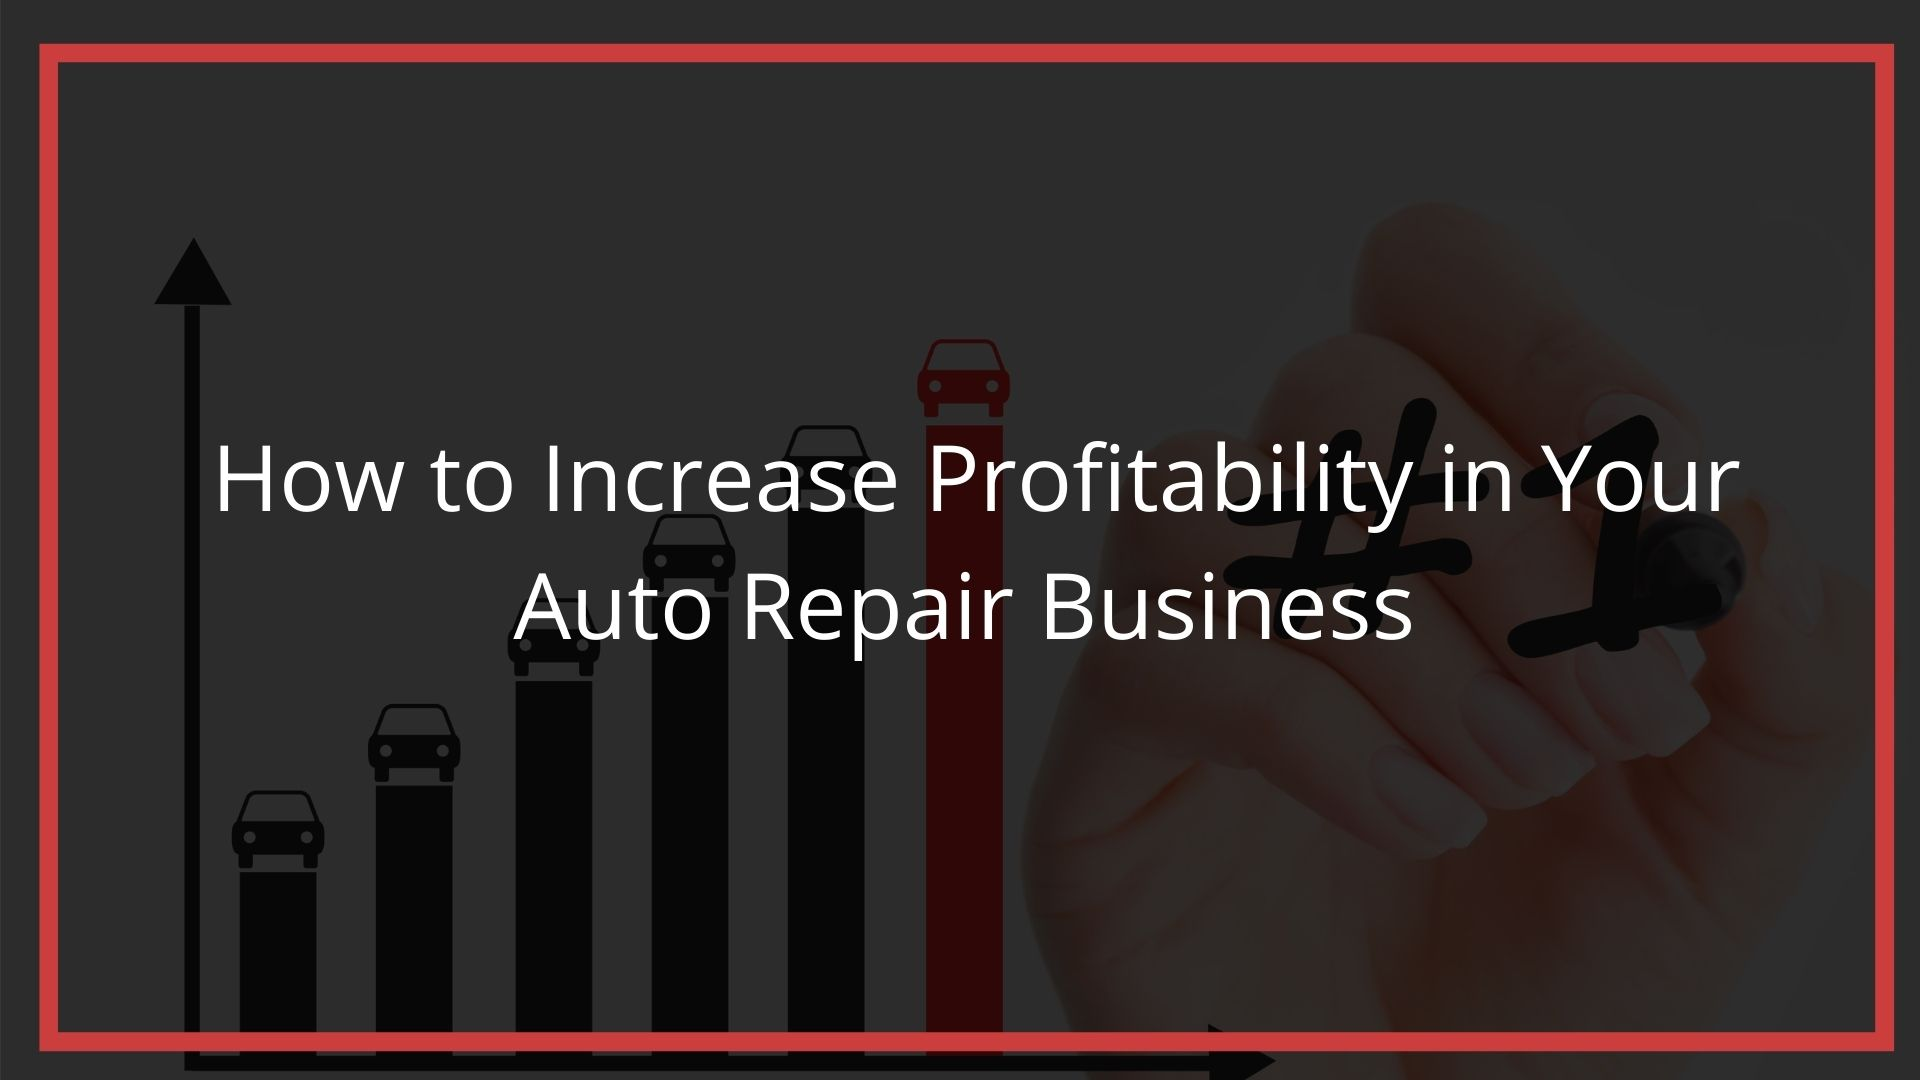 How To Increase Profitability Of Your Auto Repair Business